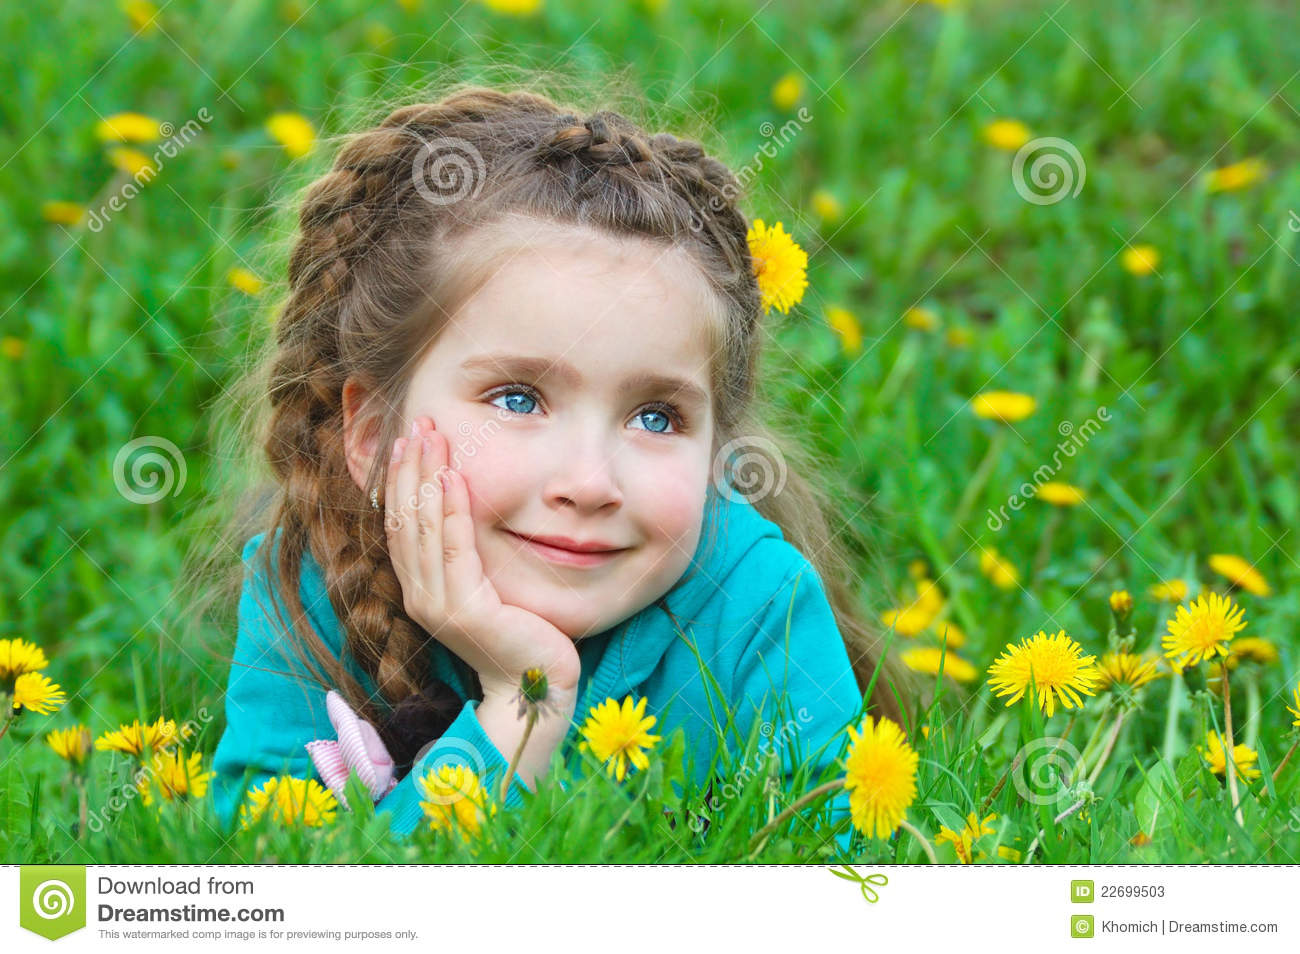 Cute Little Girl Dreaming On Green Grass Stock Photos - Image ...